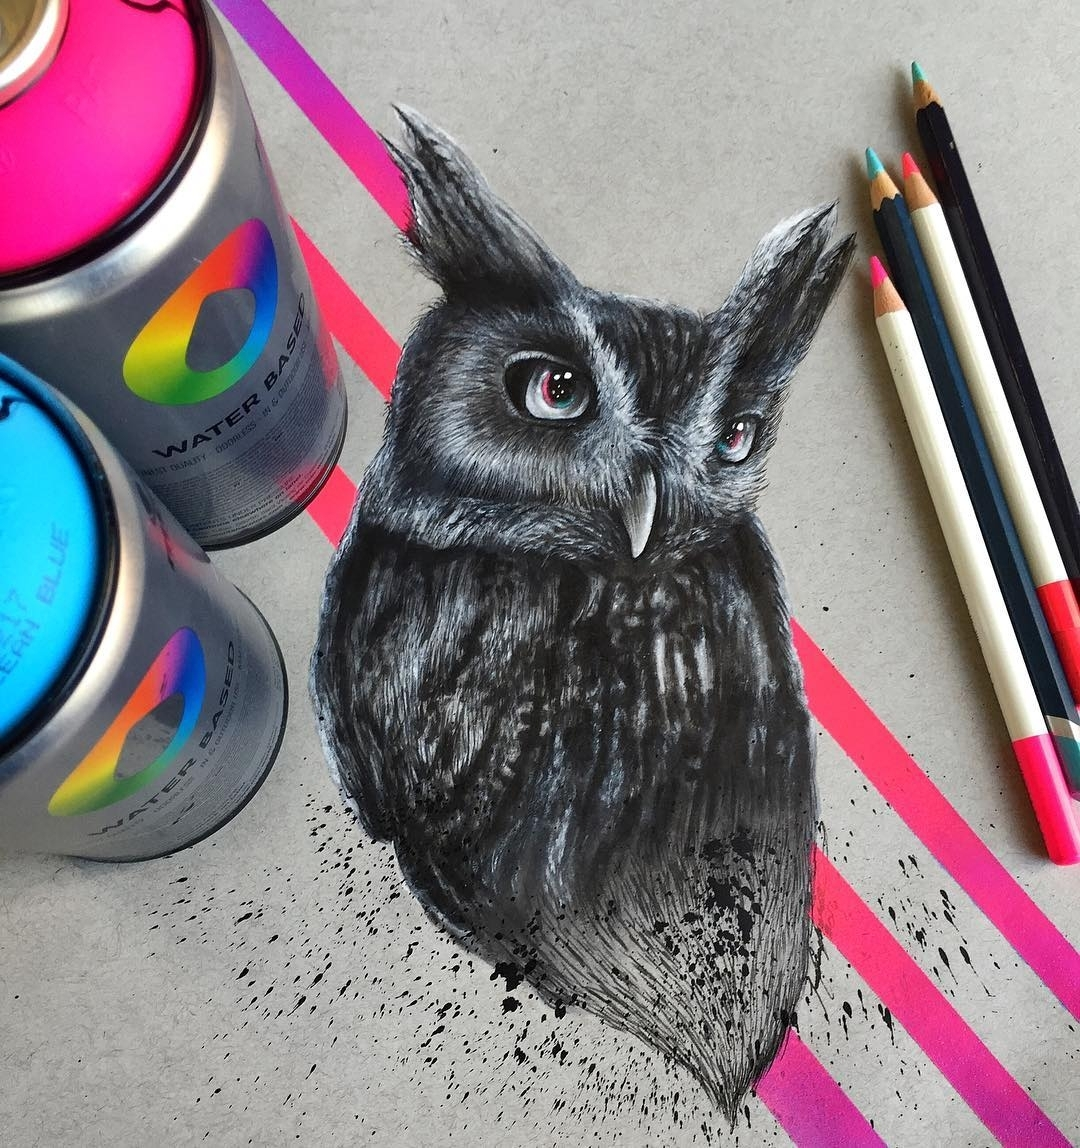 19-Owl-Spray-Pencils-Jonathan-Martinez-Art-of-the-Endangered-Paintings-and-Drawings-www-designstack-co